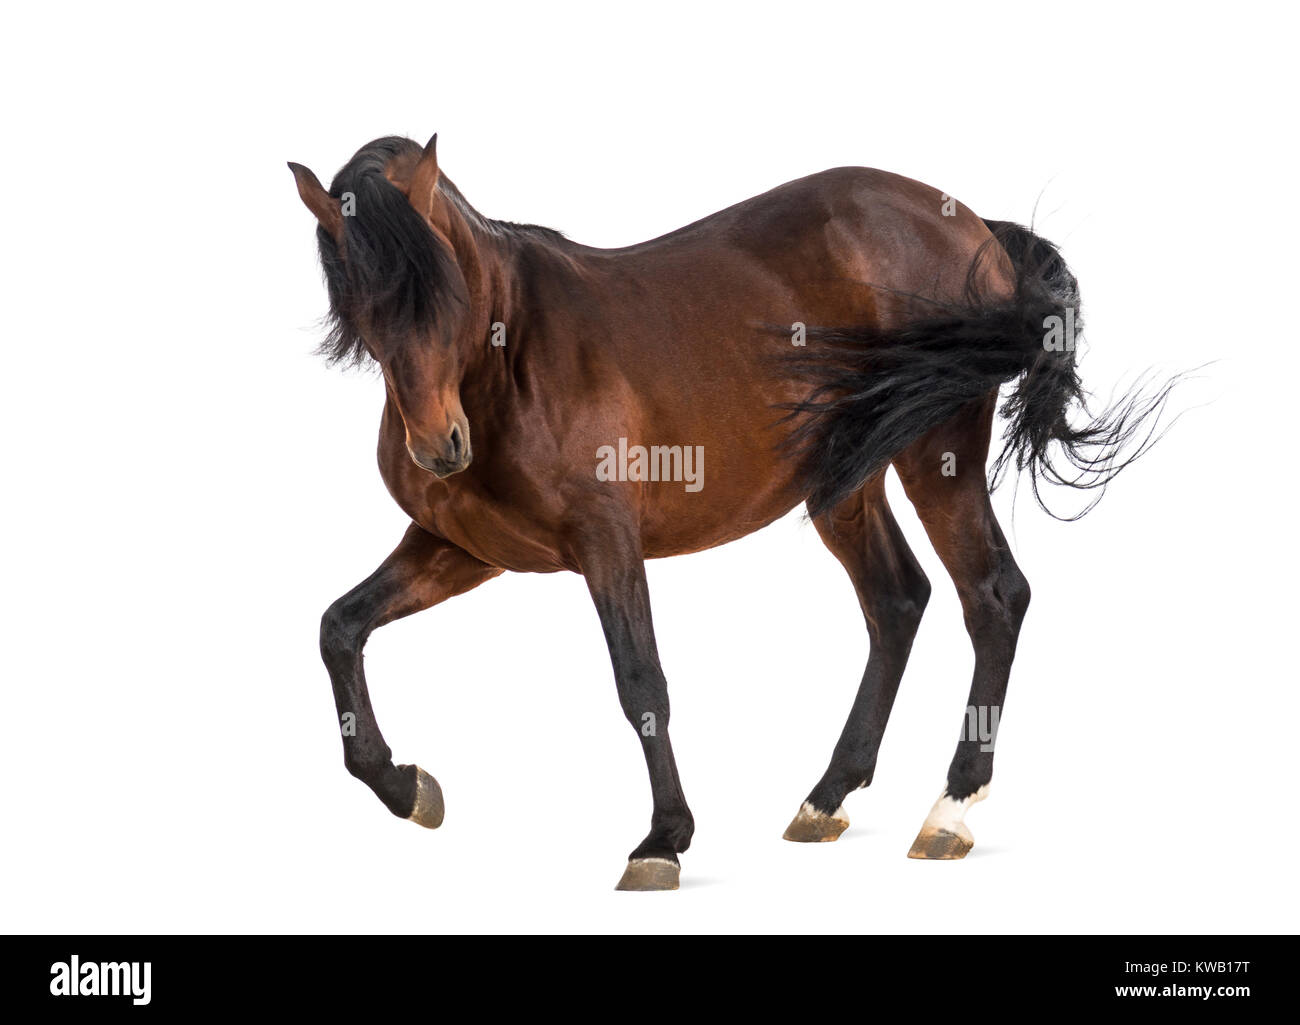 Andalusian horse trotting - Stock Image